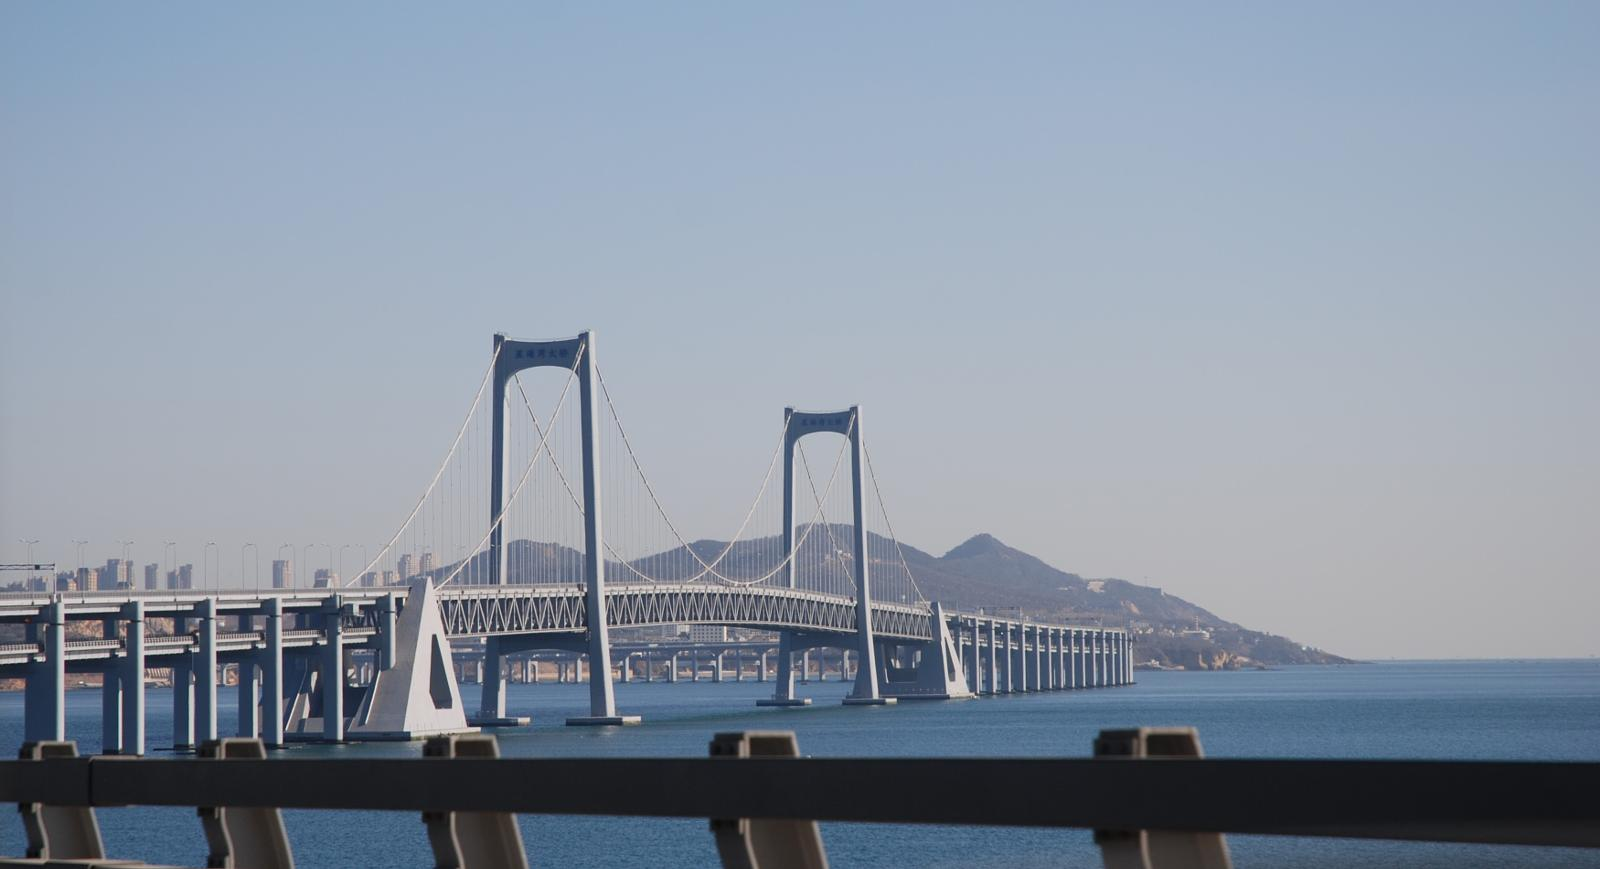 Foto de Dalian, Liaoning, PRC - Drive offshore causeway and bridge